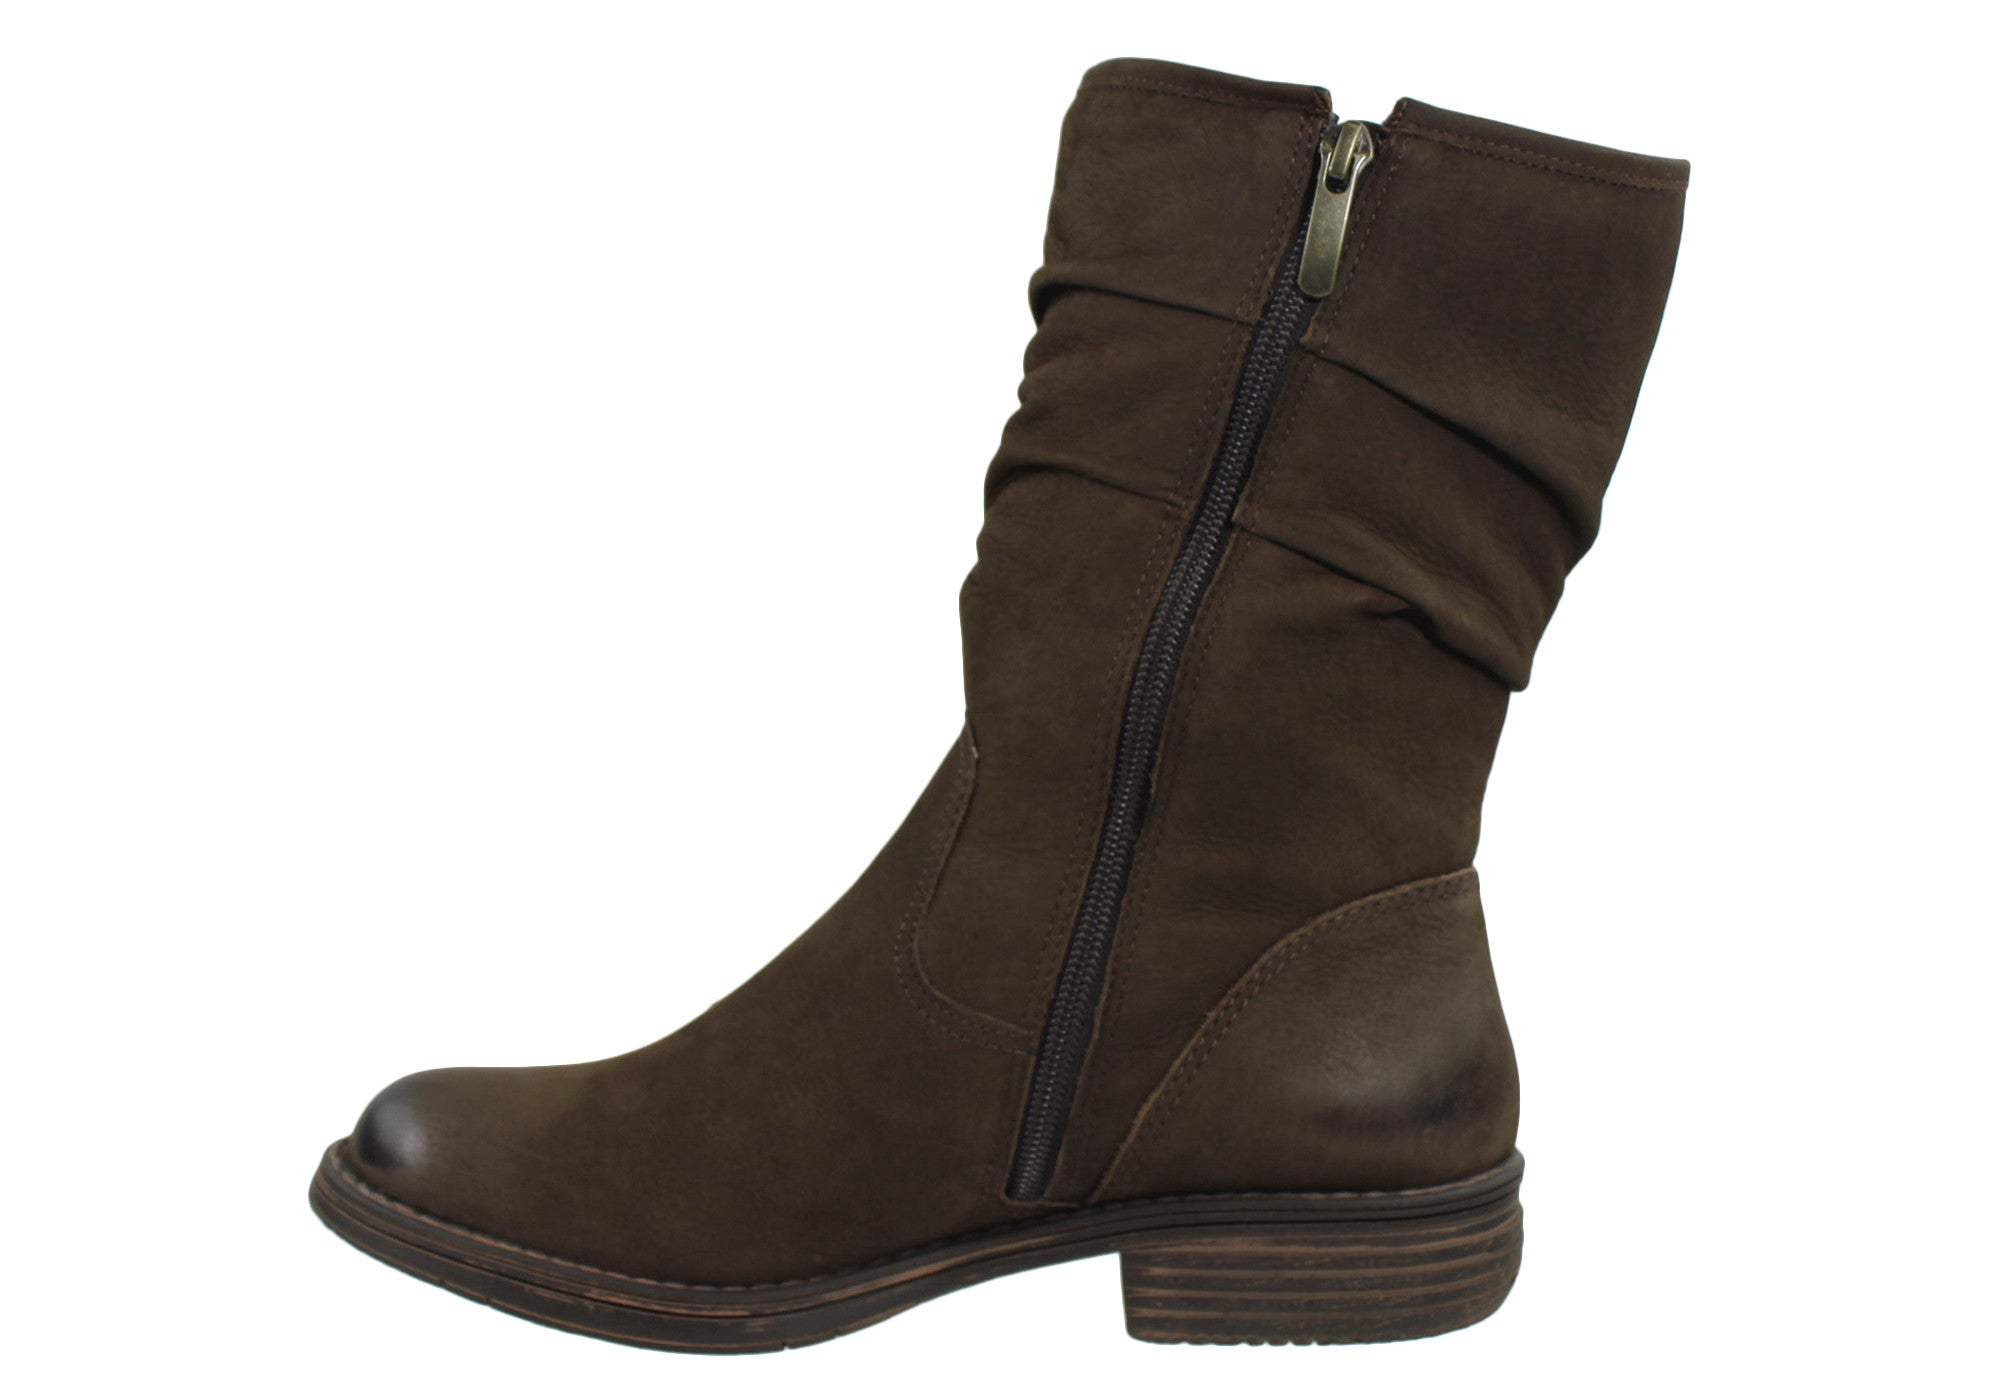 Gino Ventori Elysse Womens Leather Boots Made In Brazil